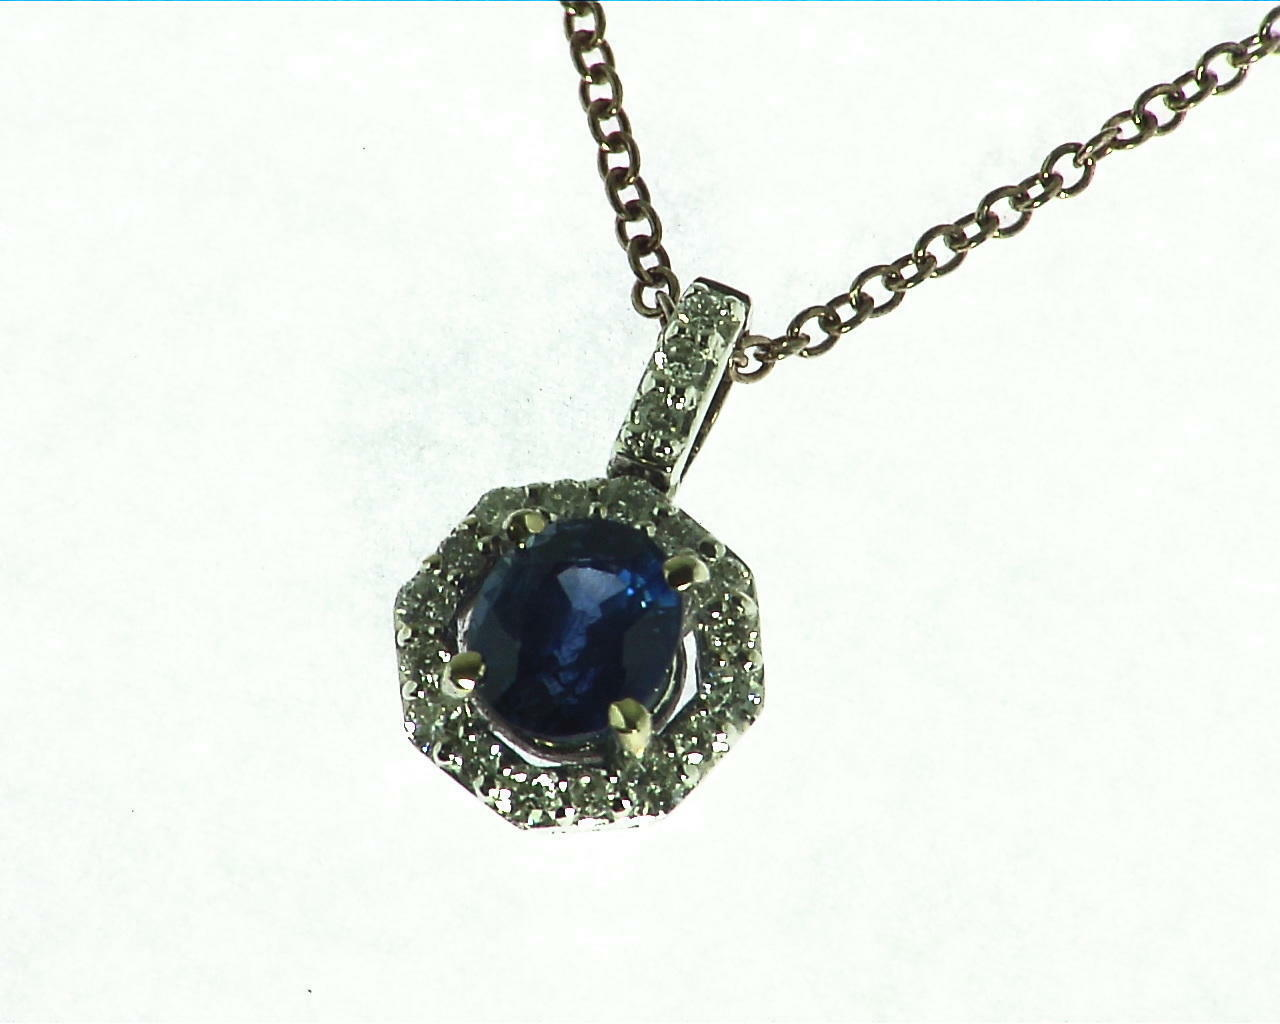 bluee Sapphire Natural Genuine Gemstone gold Pendent NFG,922